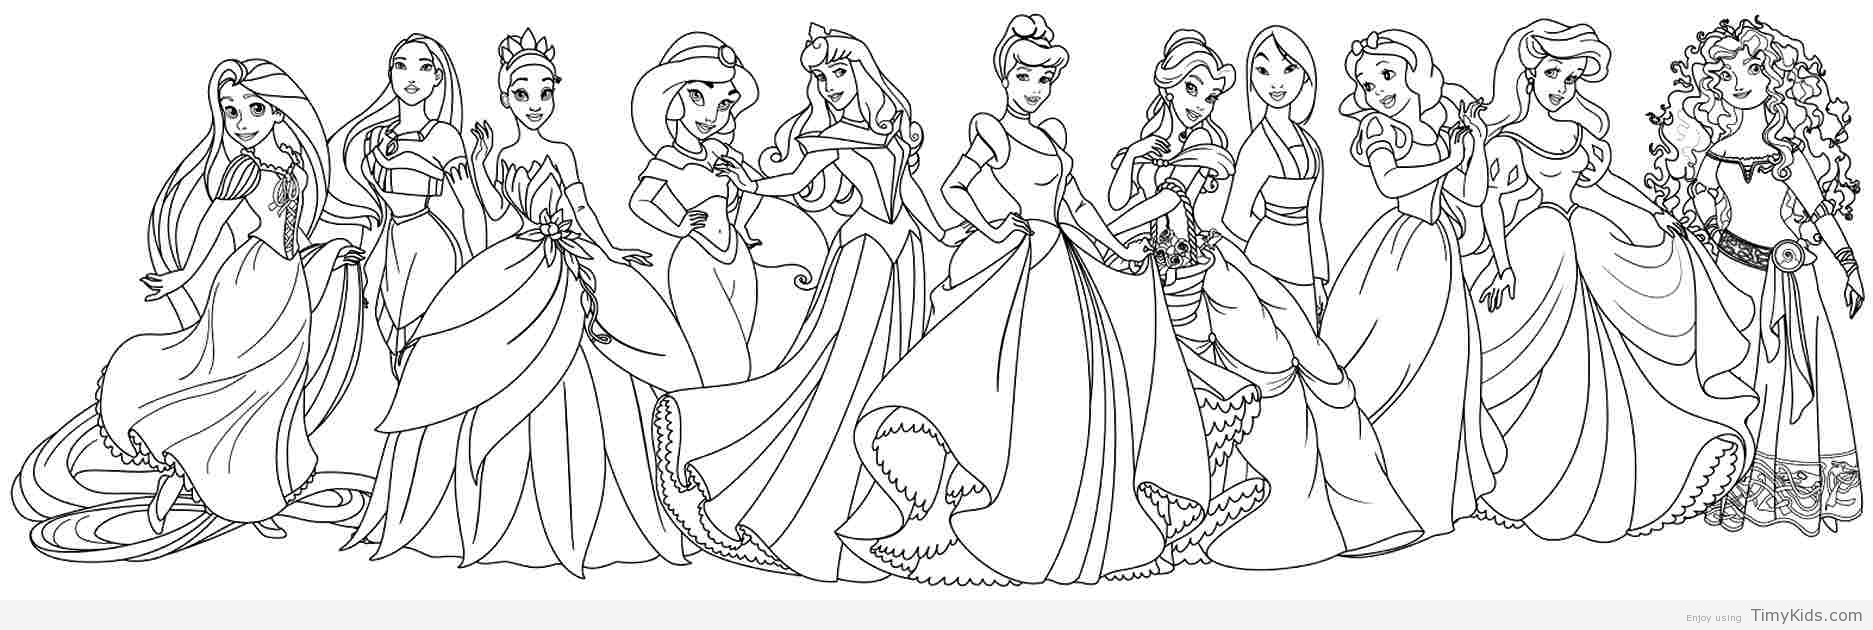 Dibujos Para Colorear Princesas Disney Jasmine: Disney Princess Coloring Pages ⋆ Coloring.rocks